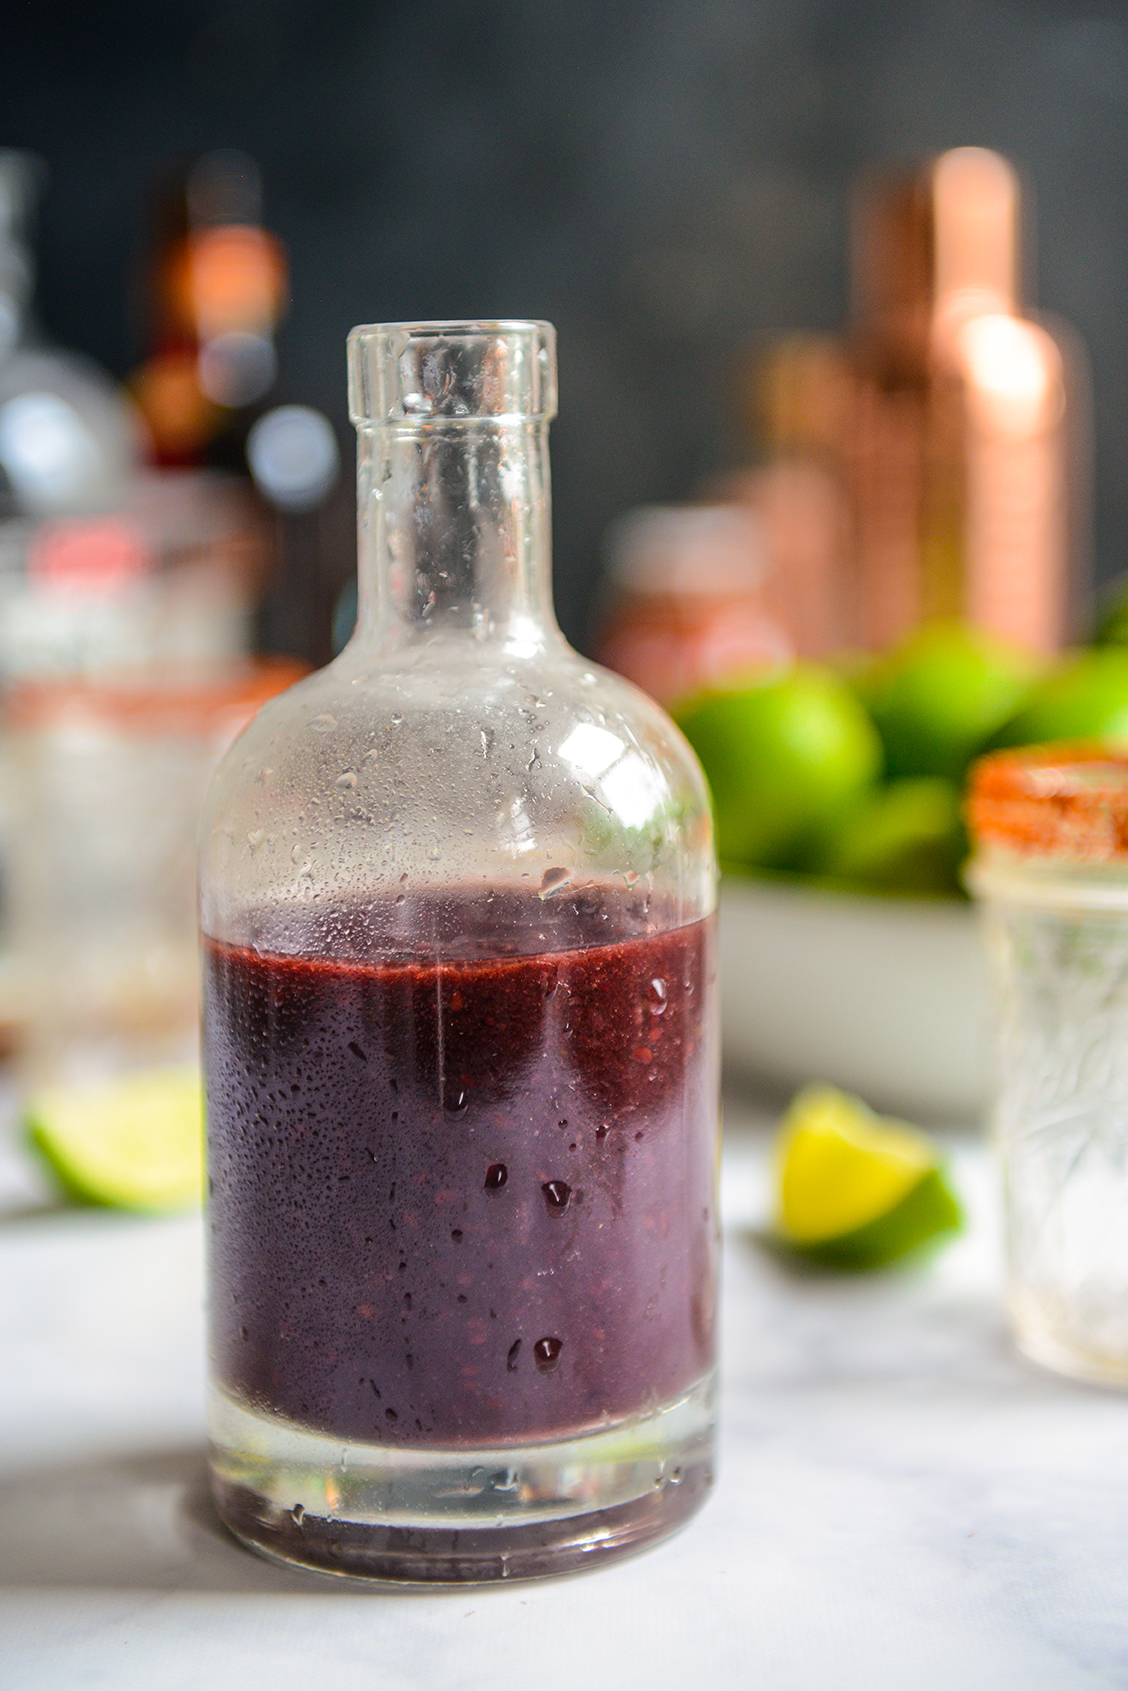 Blackberry Jalapeño Margaritas and Cakes for Healthyish Happy Hour // www.WithTheGrains.com